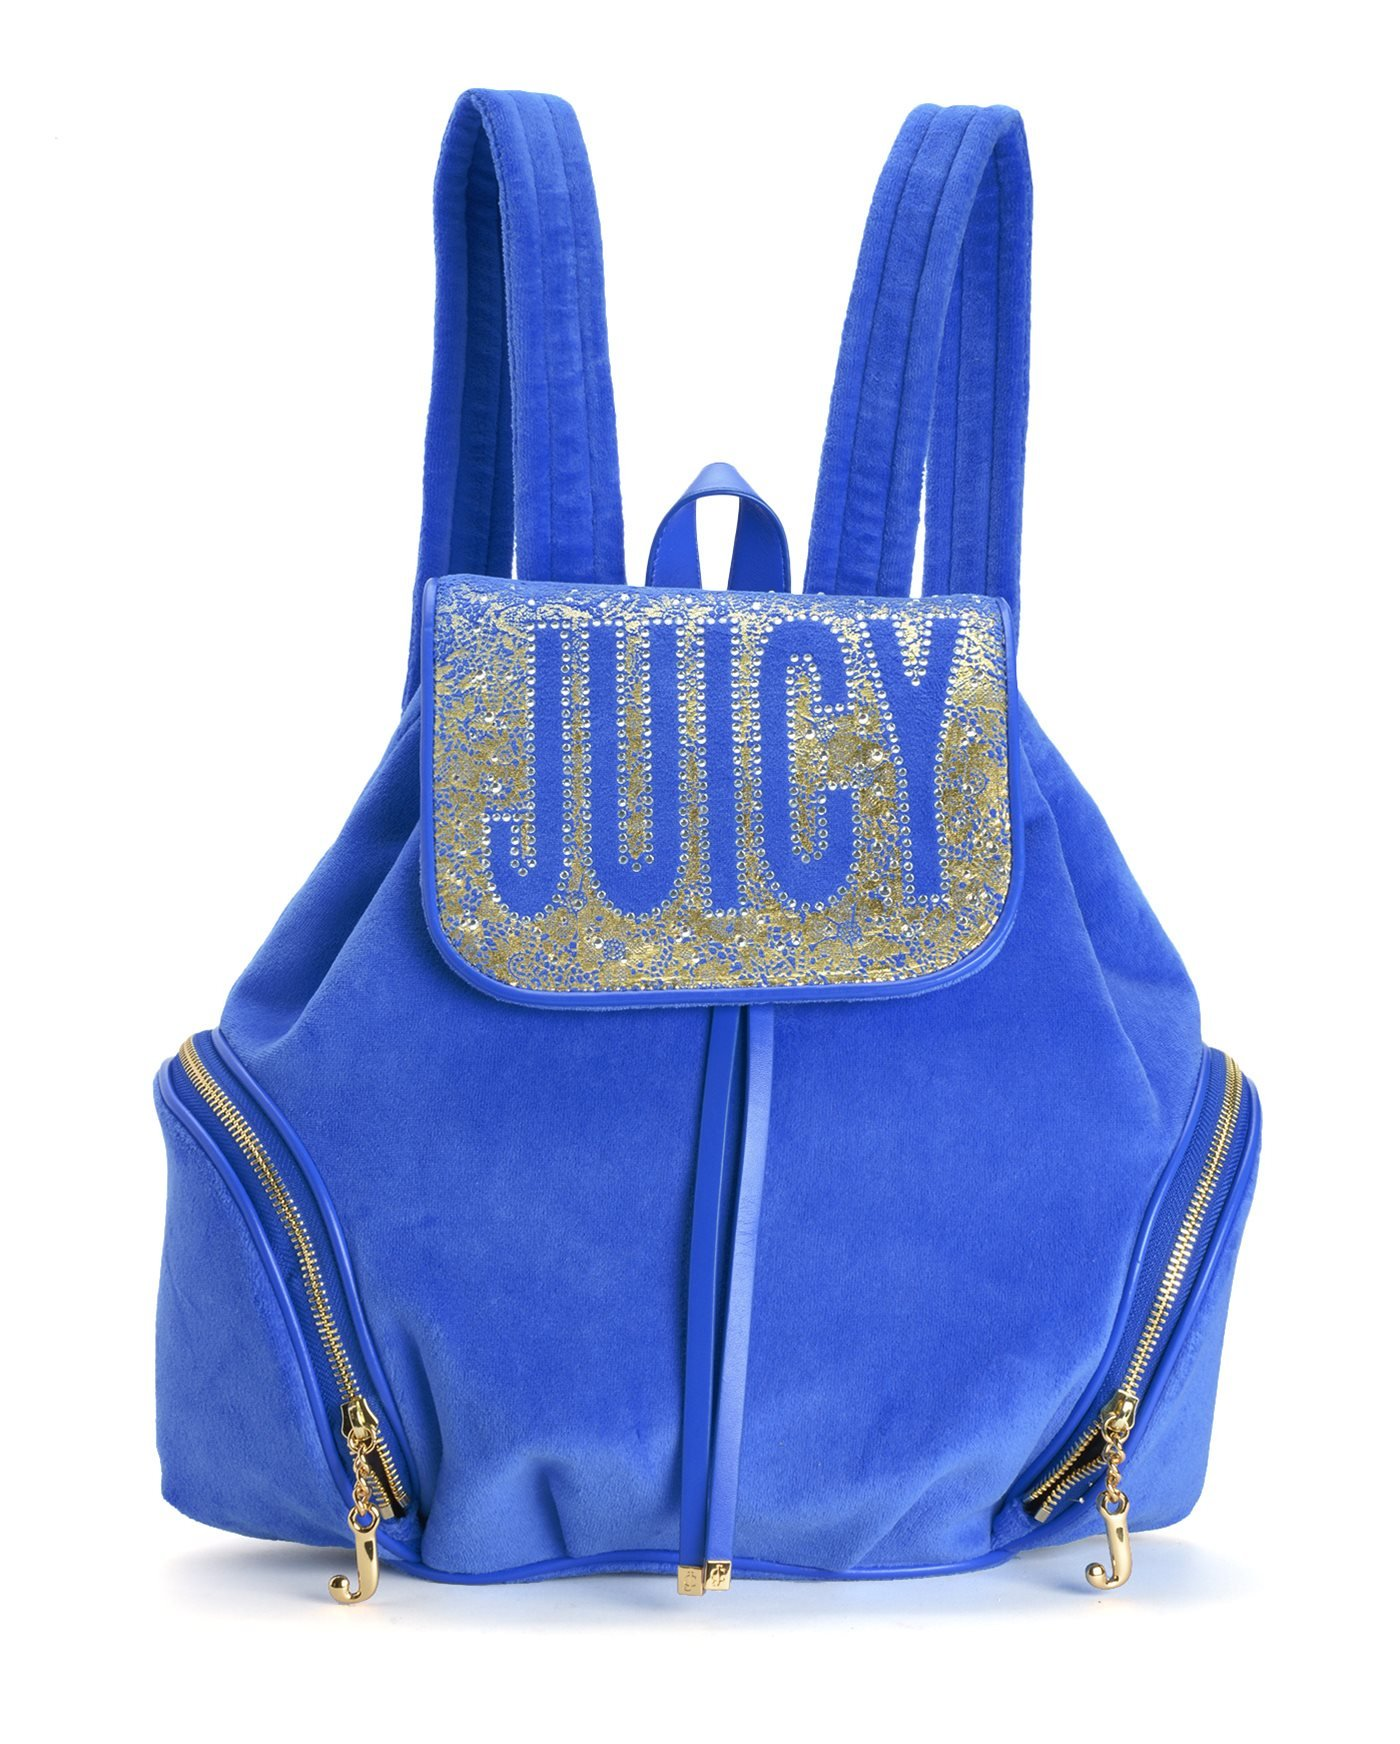 Juicy Couture Pretty in Paradise Velour Backpack, Summer Raine